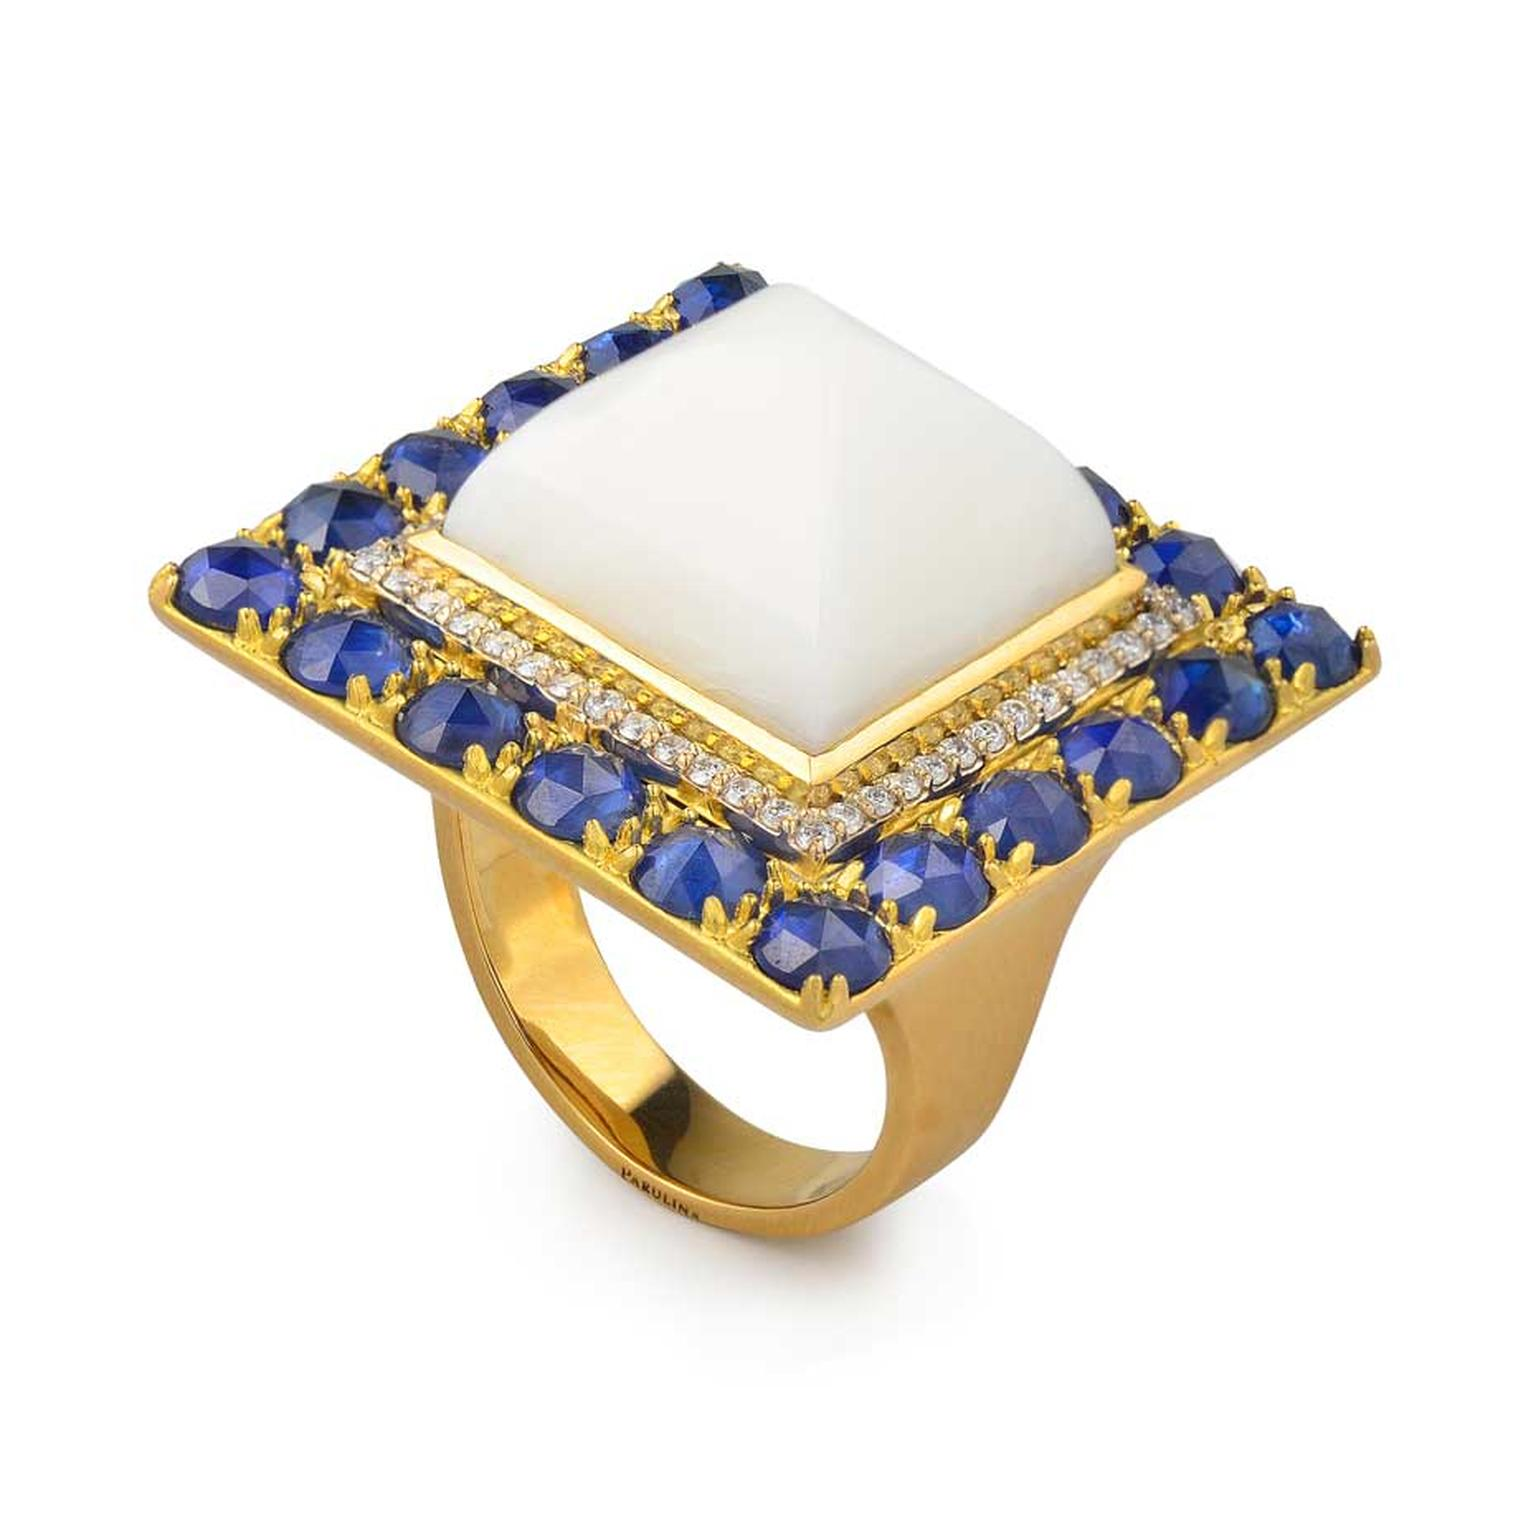 Parulina Pac-Man ring in yellow gold, set with blue sapphires, diamonds and white coral. Available at Neiman Marcus Boca Raton.